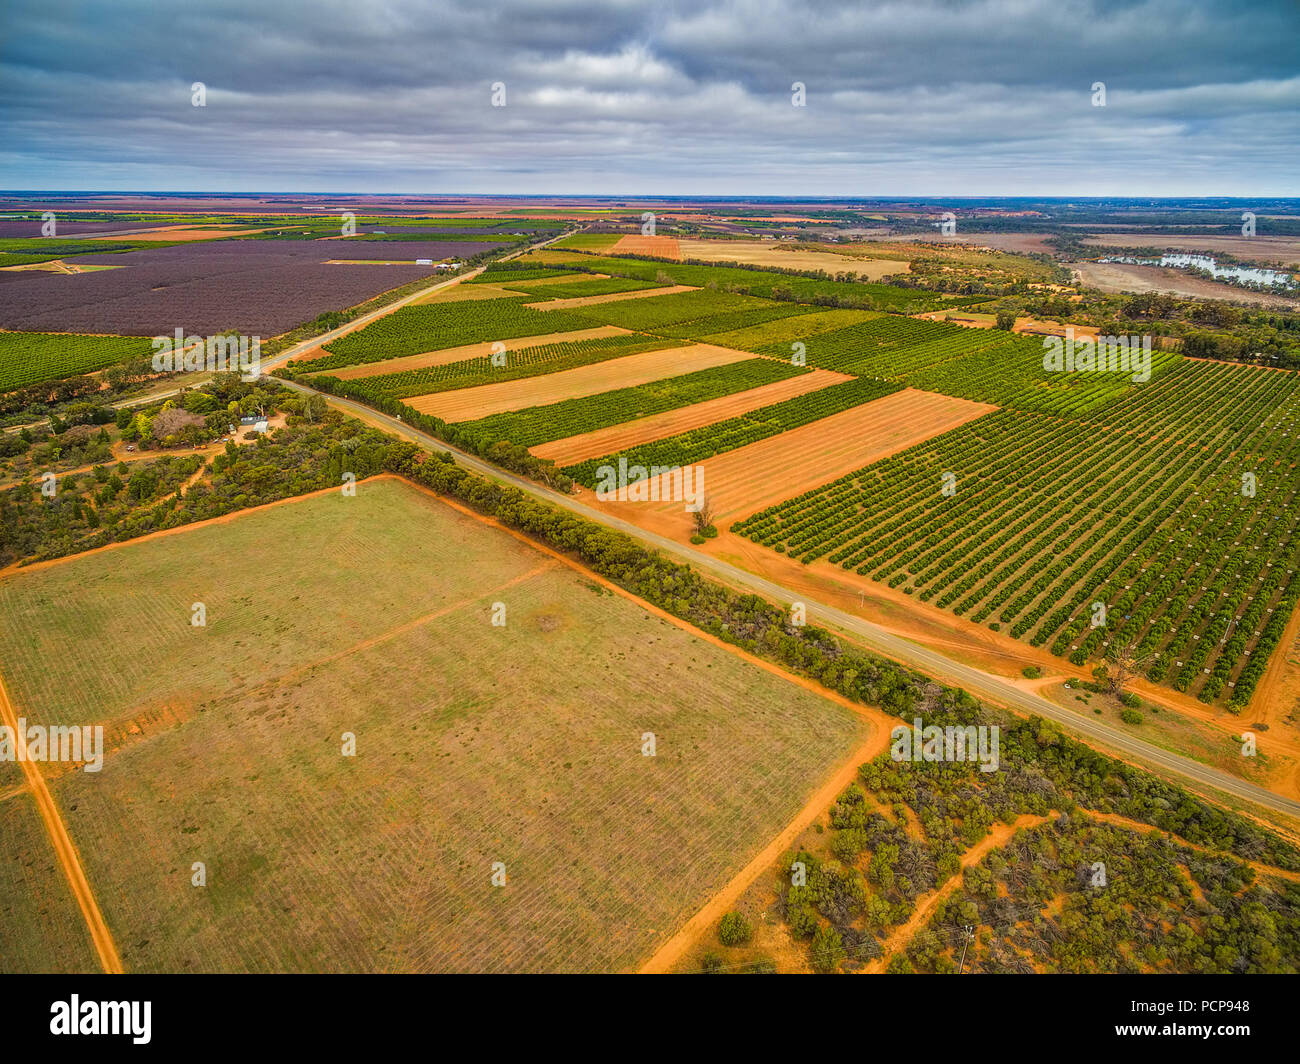 Aerial view of agricultural fields in Murtho, Riverland, Australia - Stock Image